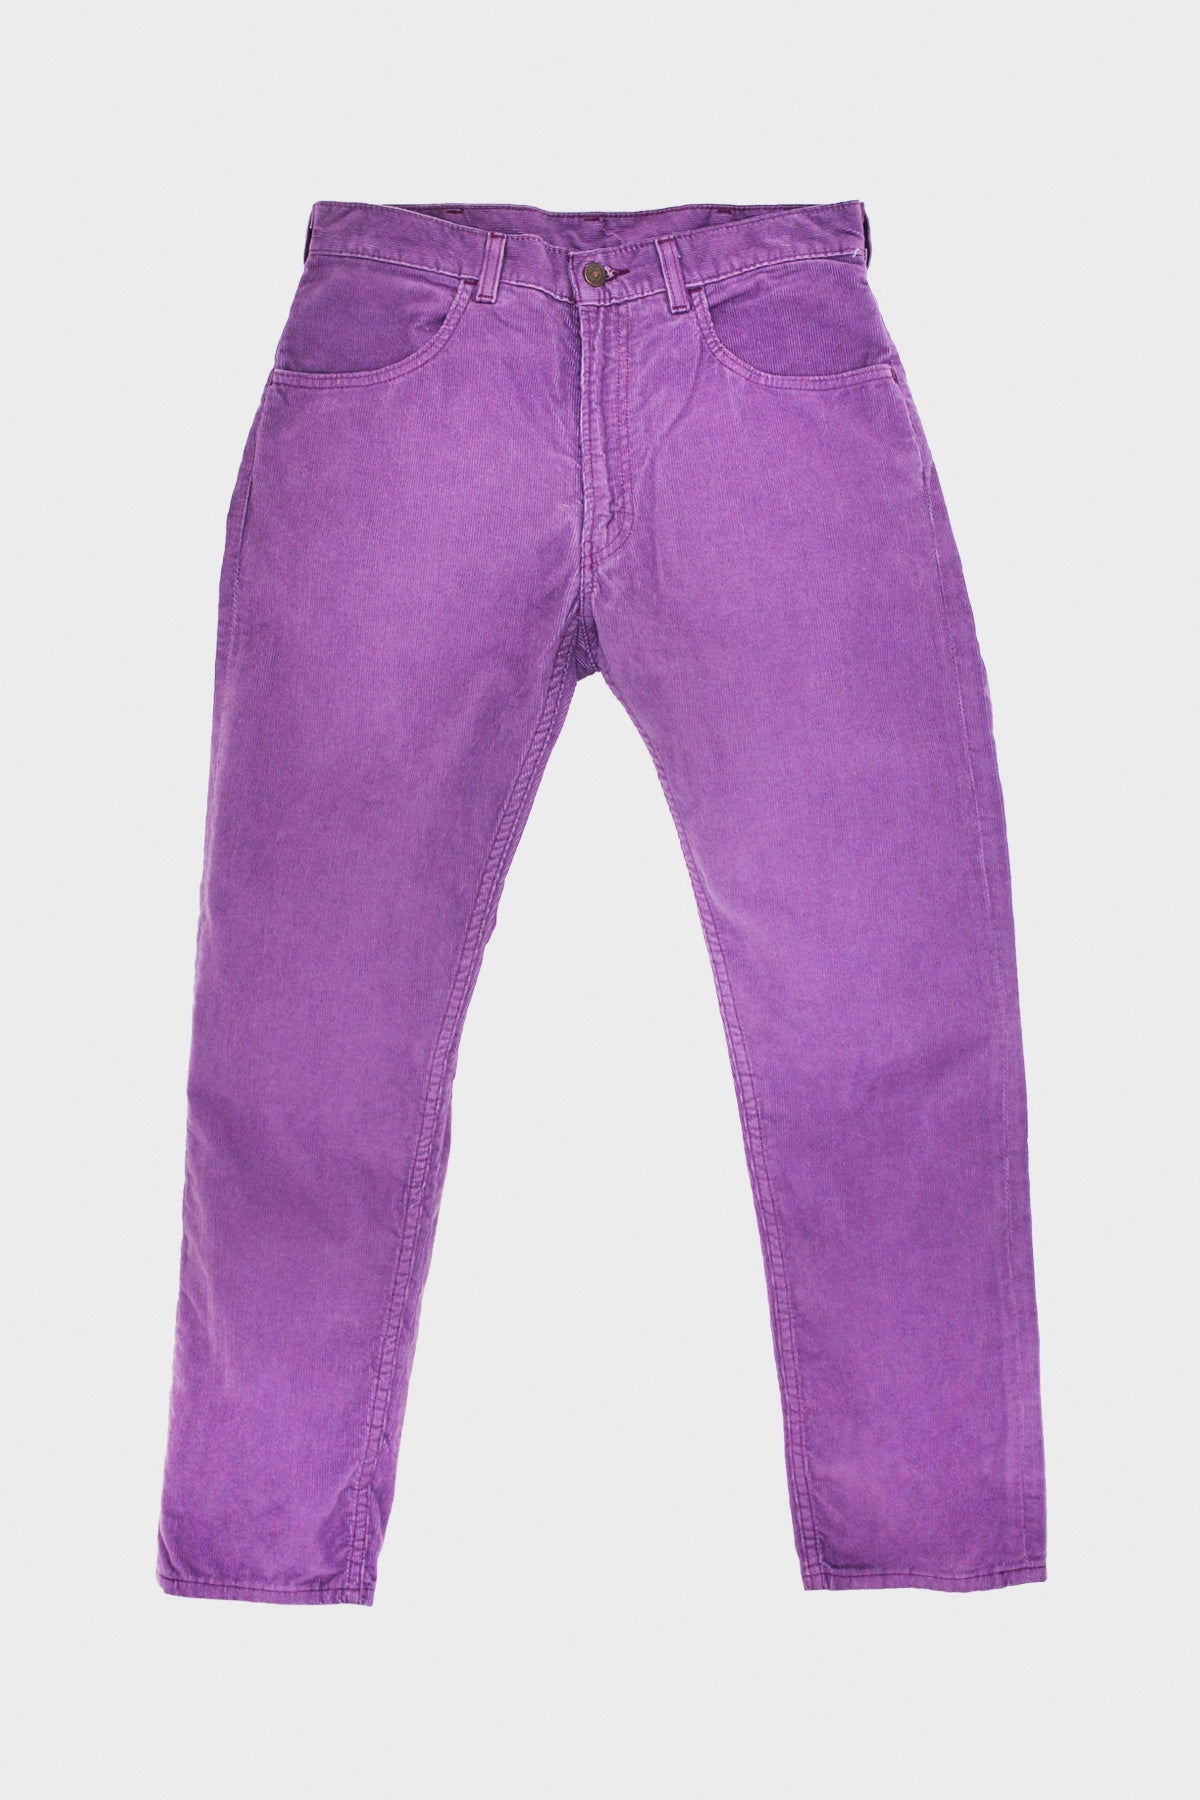 levi's vintage clothing 1970's 519 Cords - Grape Jam